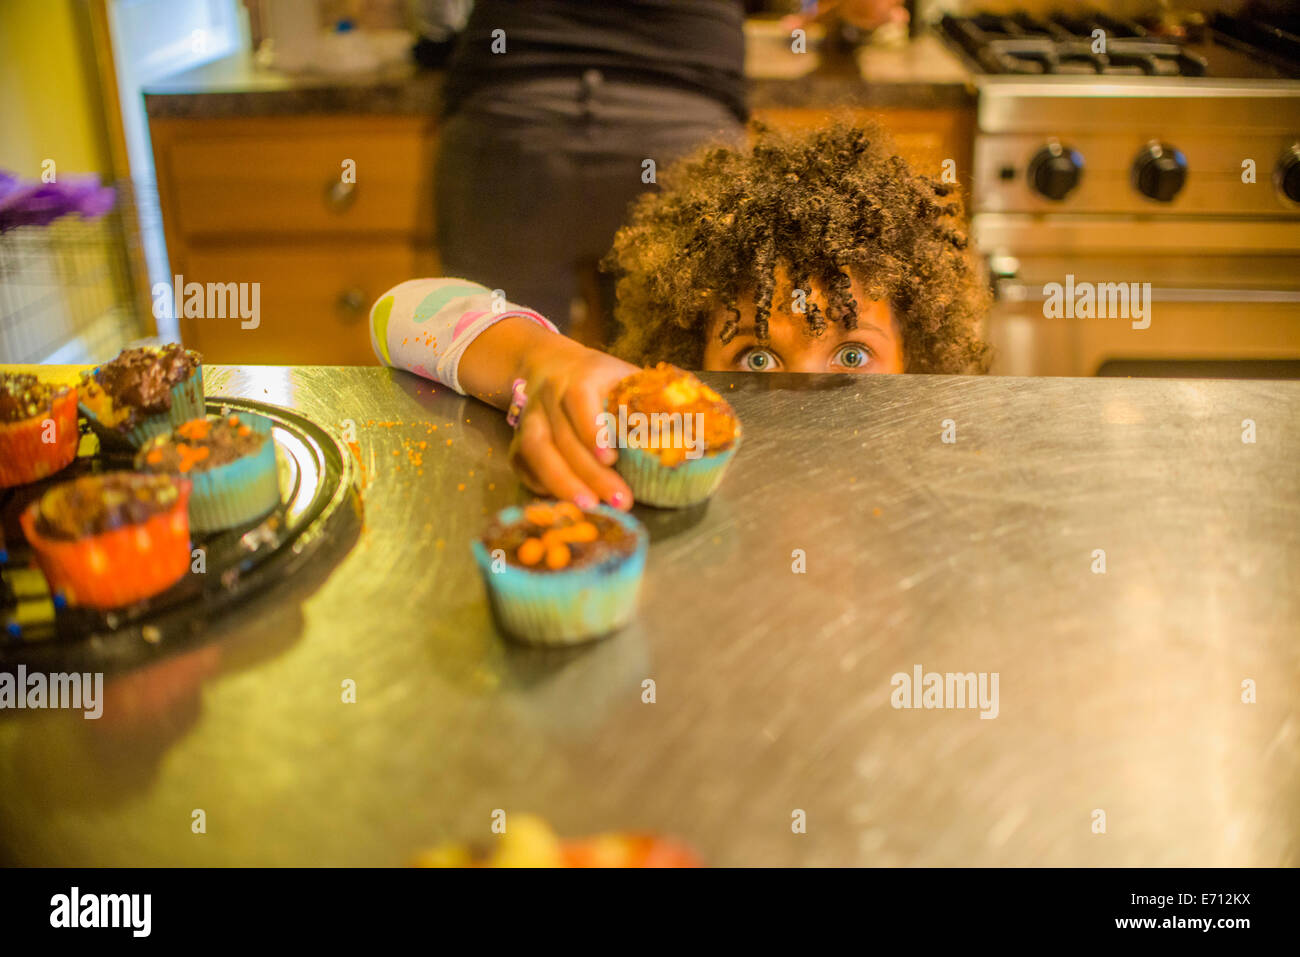 Portrait of girl reaching for cupcakes at kitchen counter - Stock Image